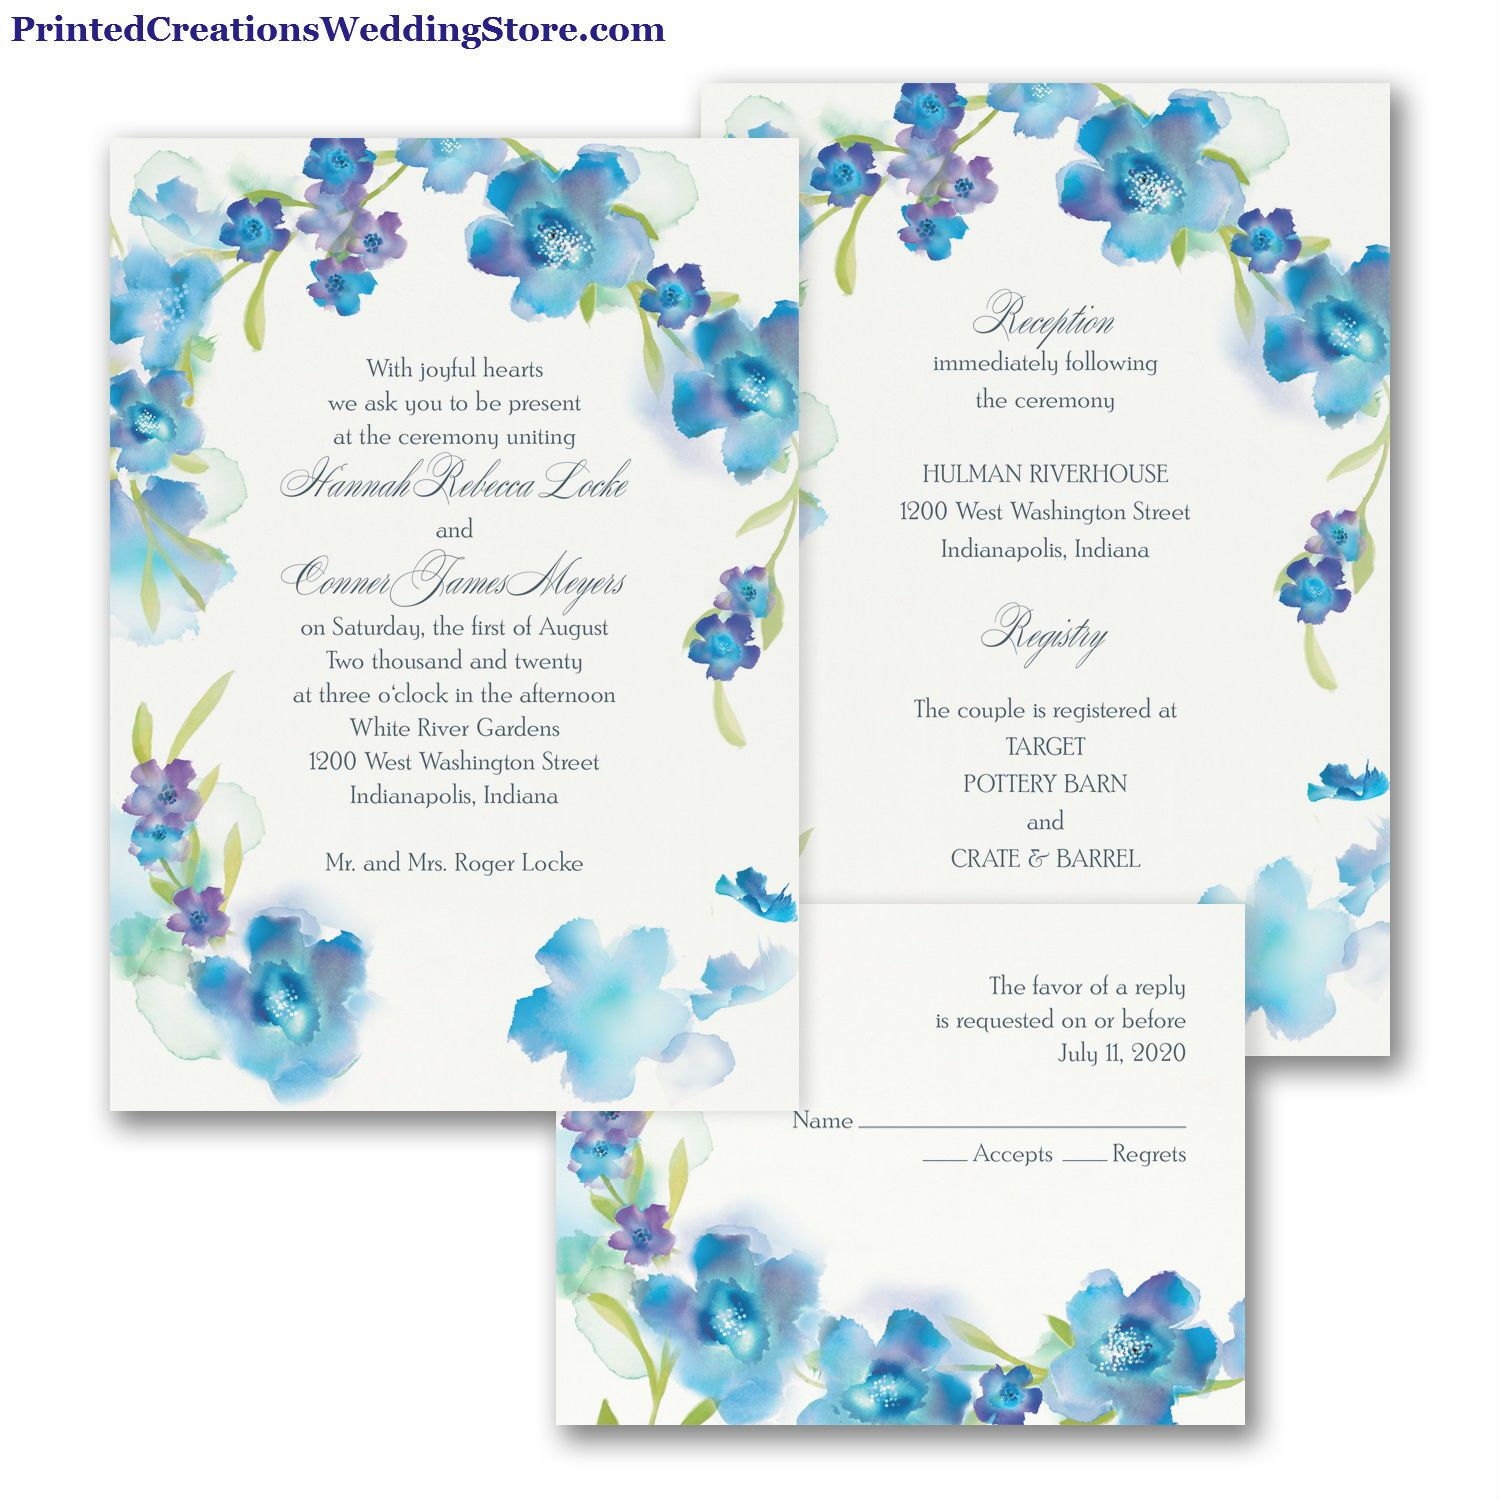 Watercolor Flowers Valstyle Invitation Blueberry White